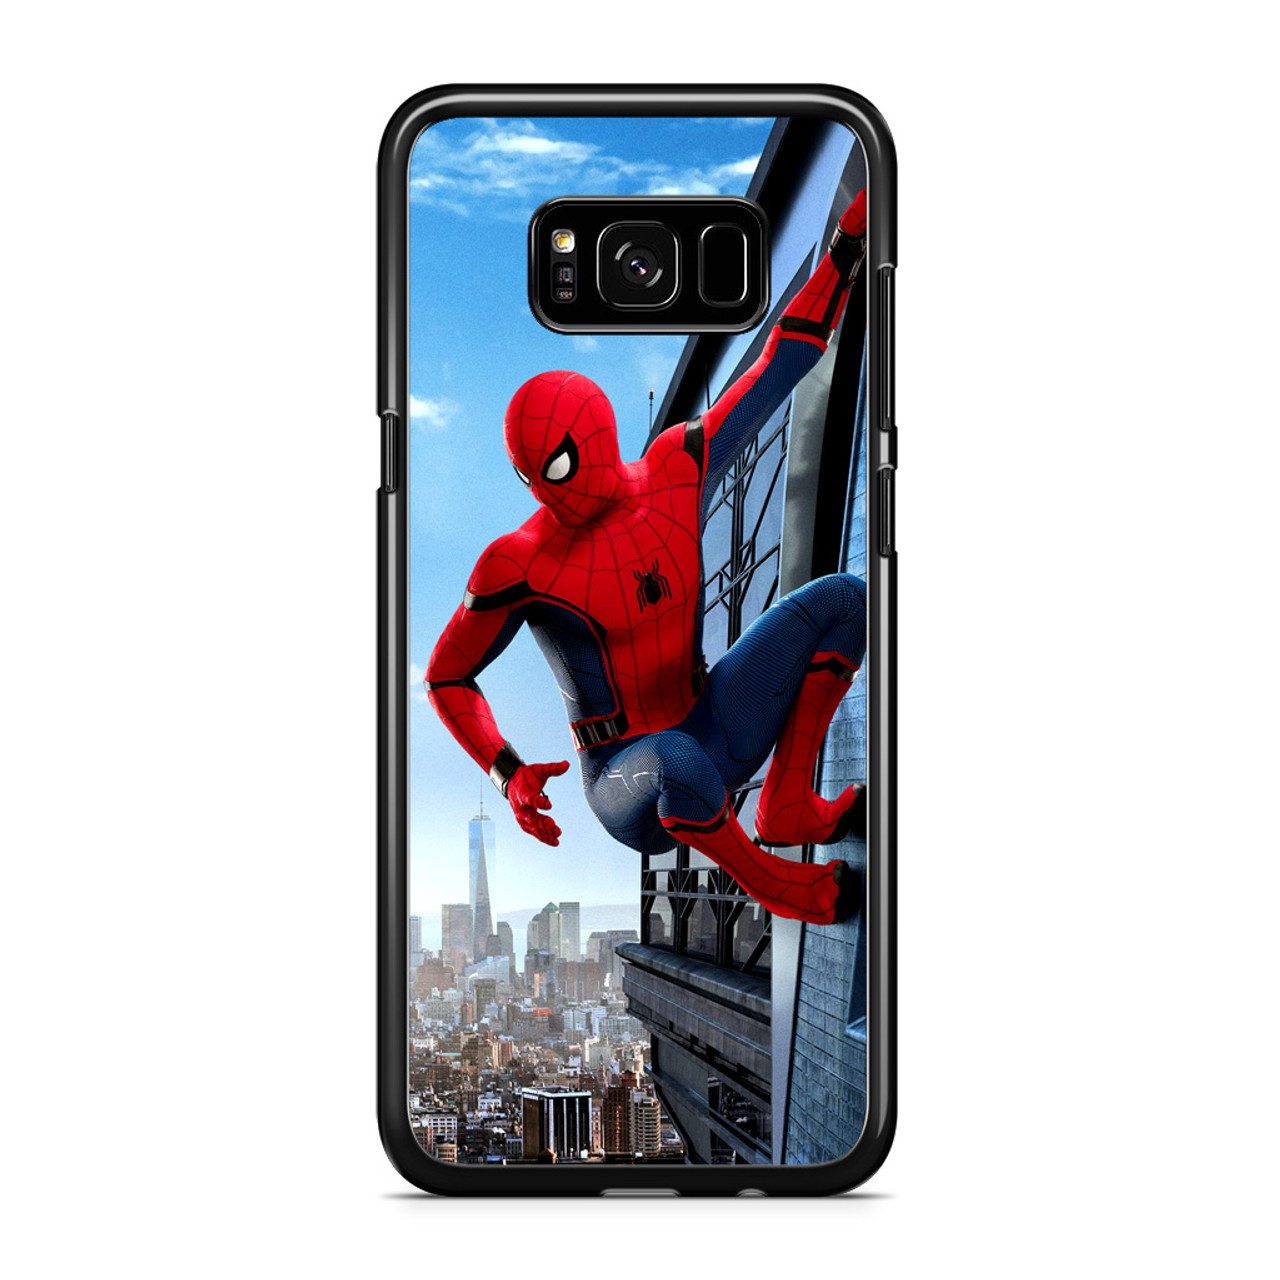 competitive price 61efb 92b47 Homecoming Spiderman Samsung Galaxy S8 Case